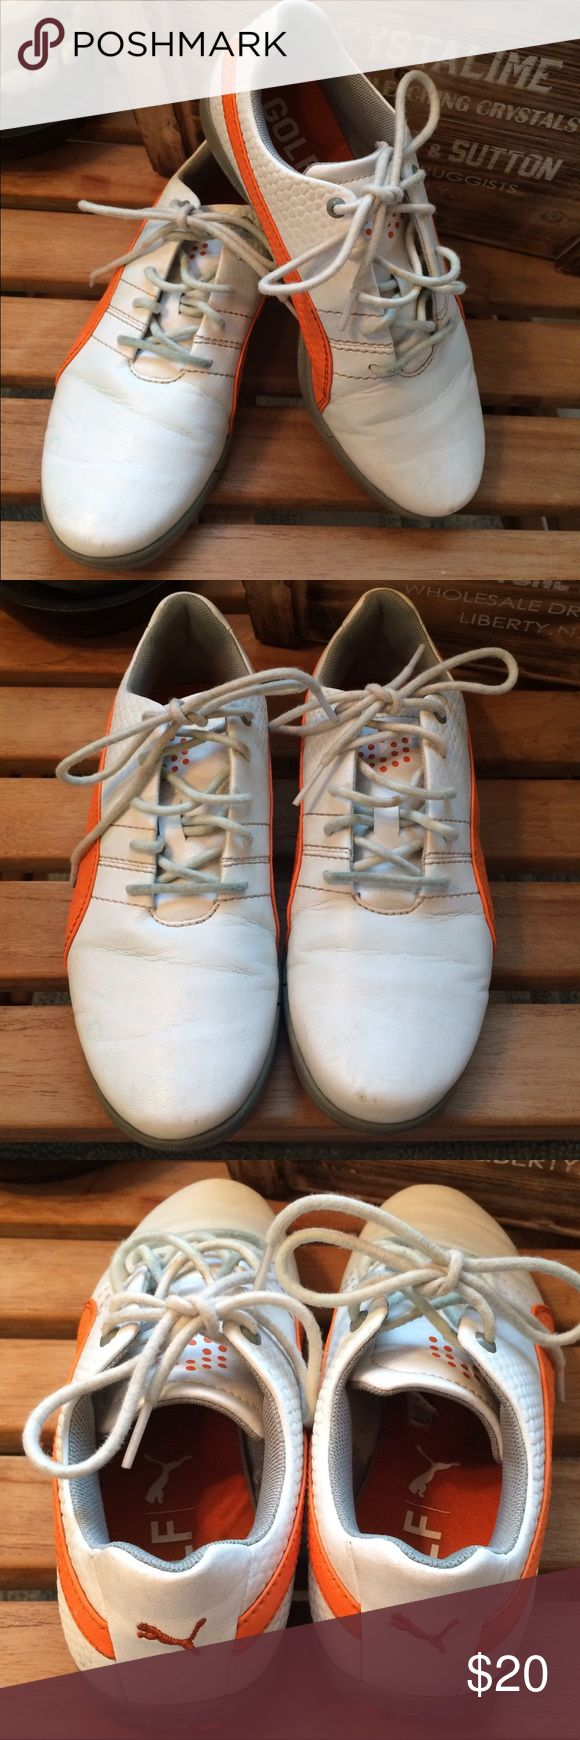 Boys Puma Golf Spikes Size 5 great condition!! Boys Puma Golf spikes in size 5. These are In great condition just small little marks on front toe. My son only wore them a few times during the season before he outgrew them! Puma Shoes